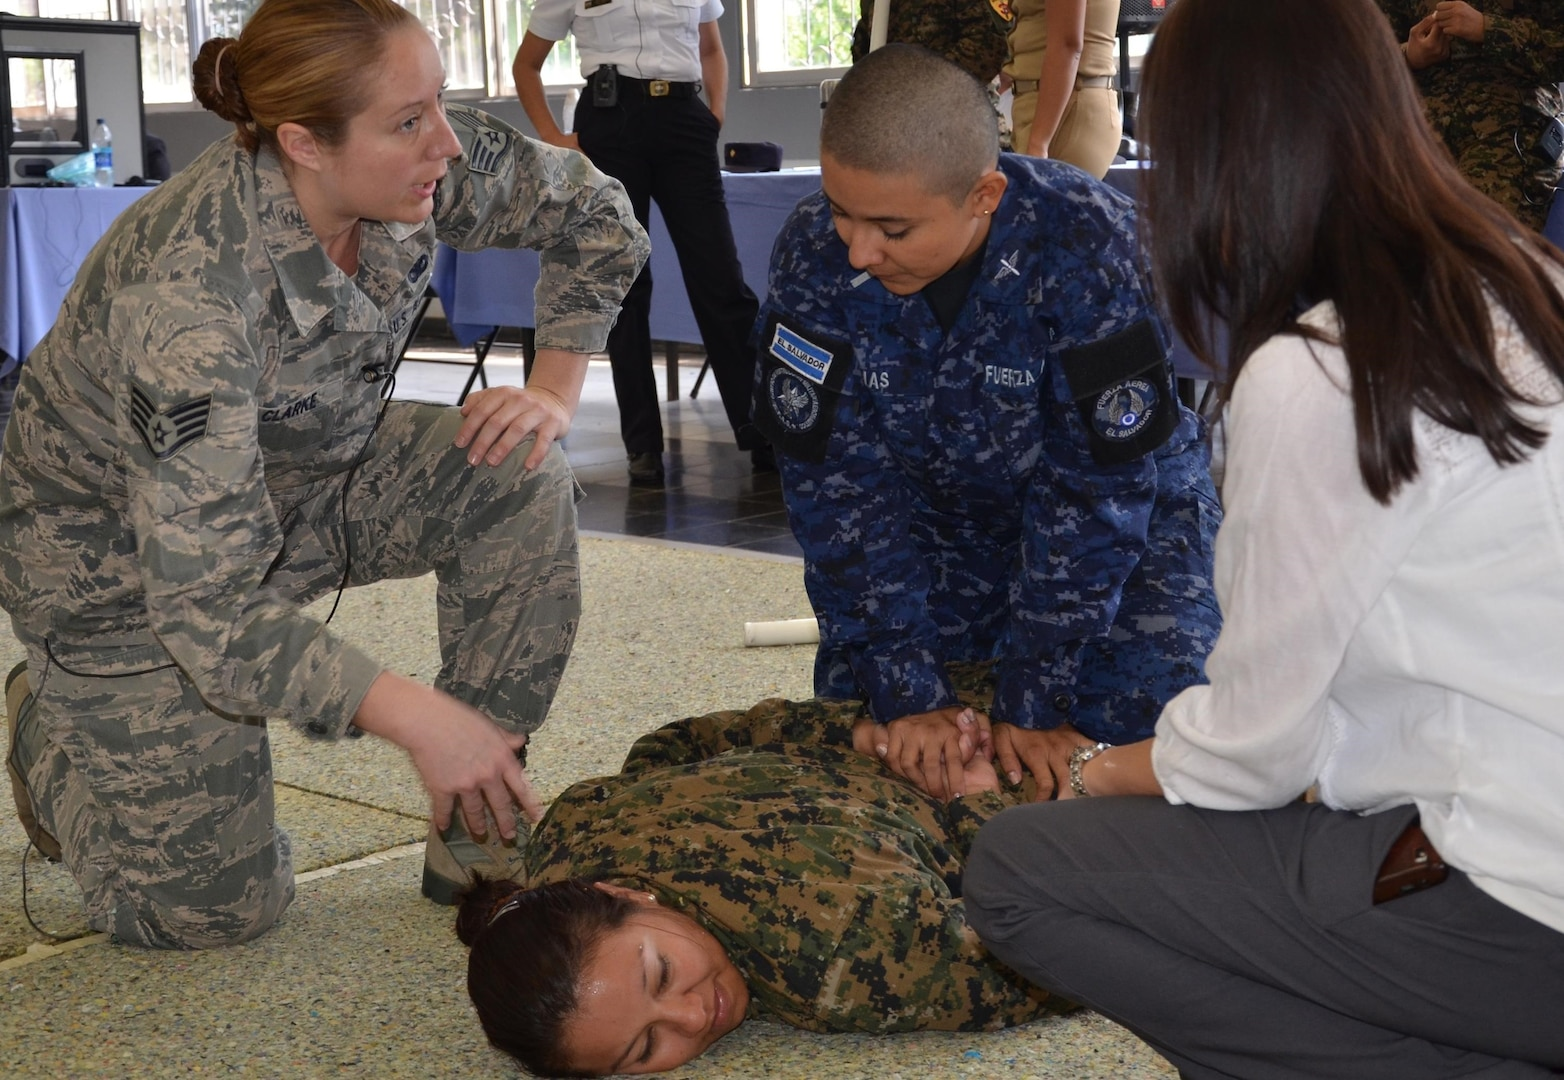 Staff Sgt. Autumn Clark instructs a member of the Salvadoran Air Force on the techniques to subdue and restrain a suspect, played here by a classmate from the Salvadoran army.